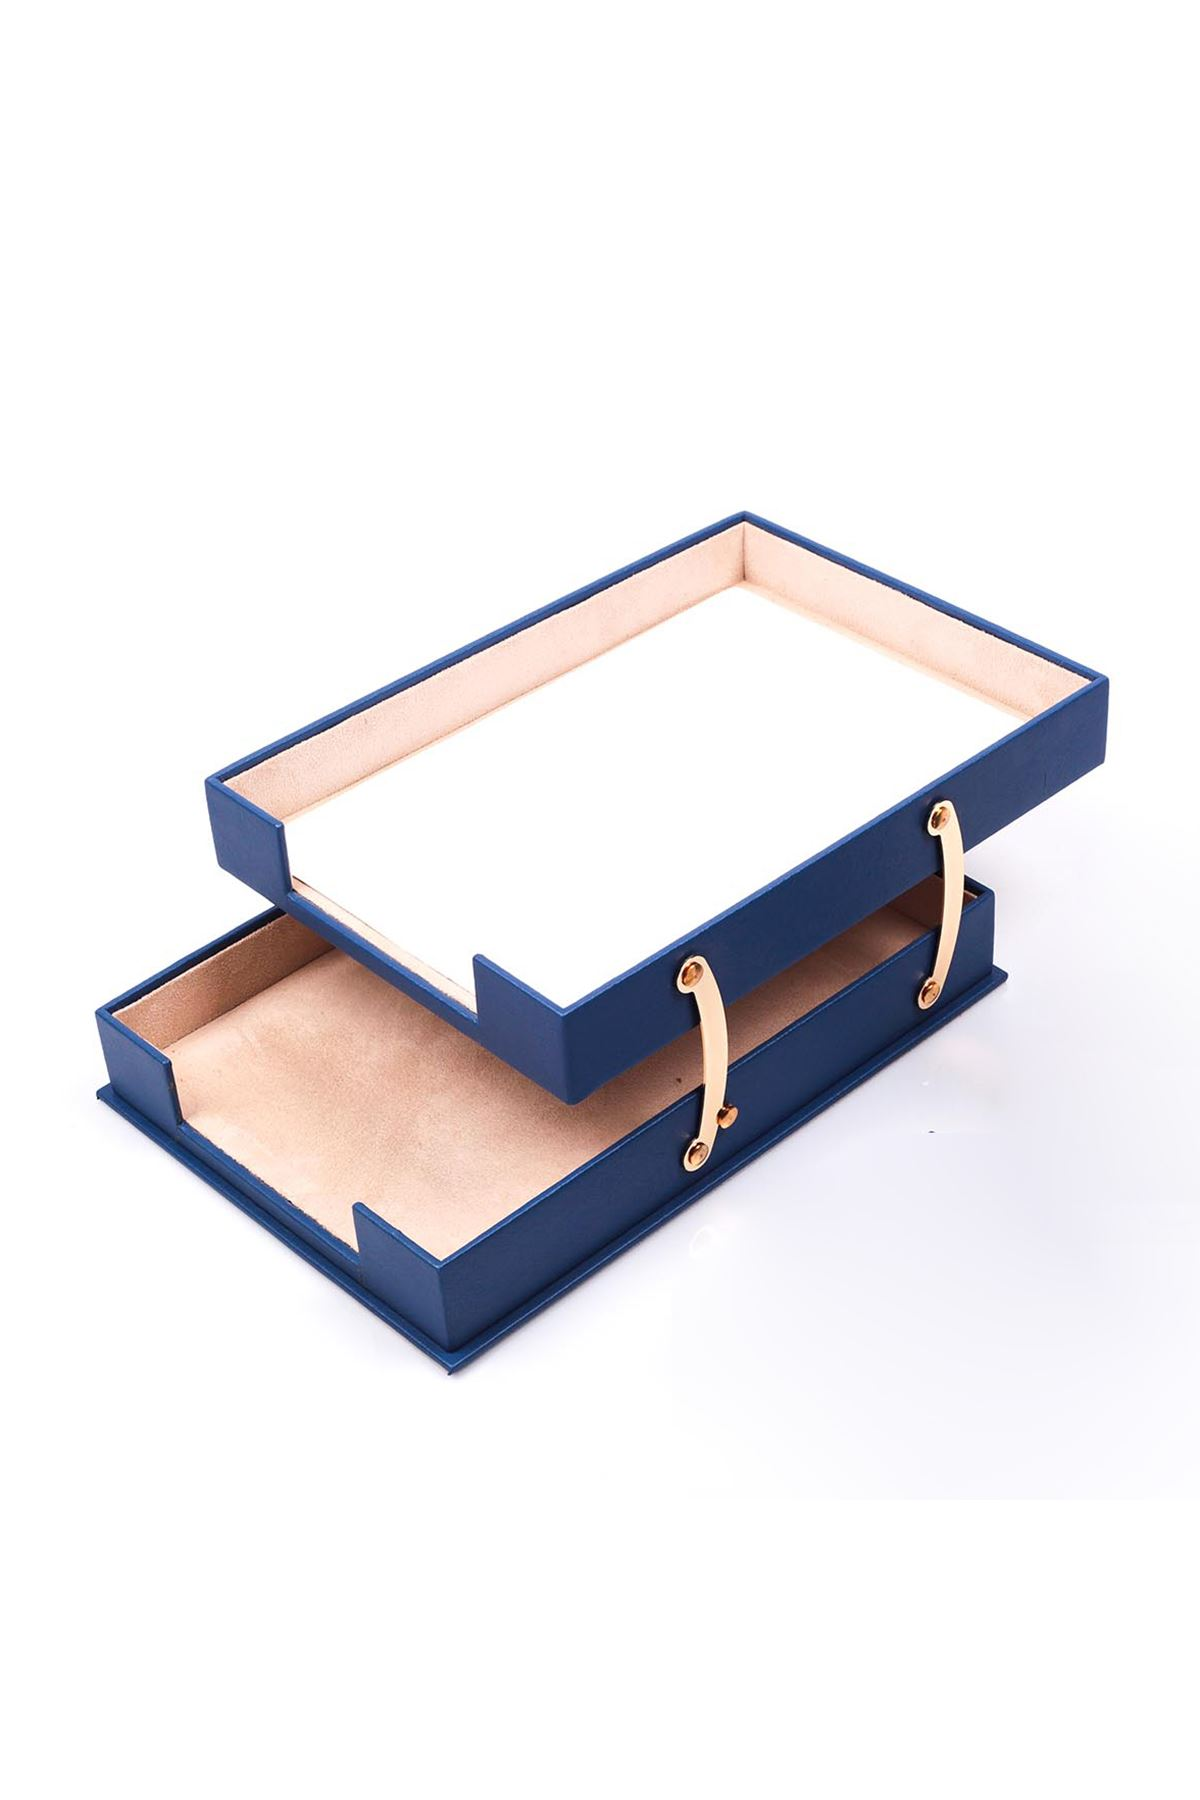 Double Document Tray Blue| Leather Document Organizer | Leather Foldable Tray | Leather Organizer | Double Document Shelves